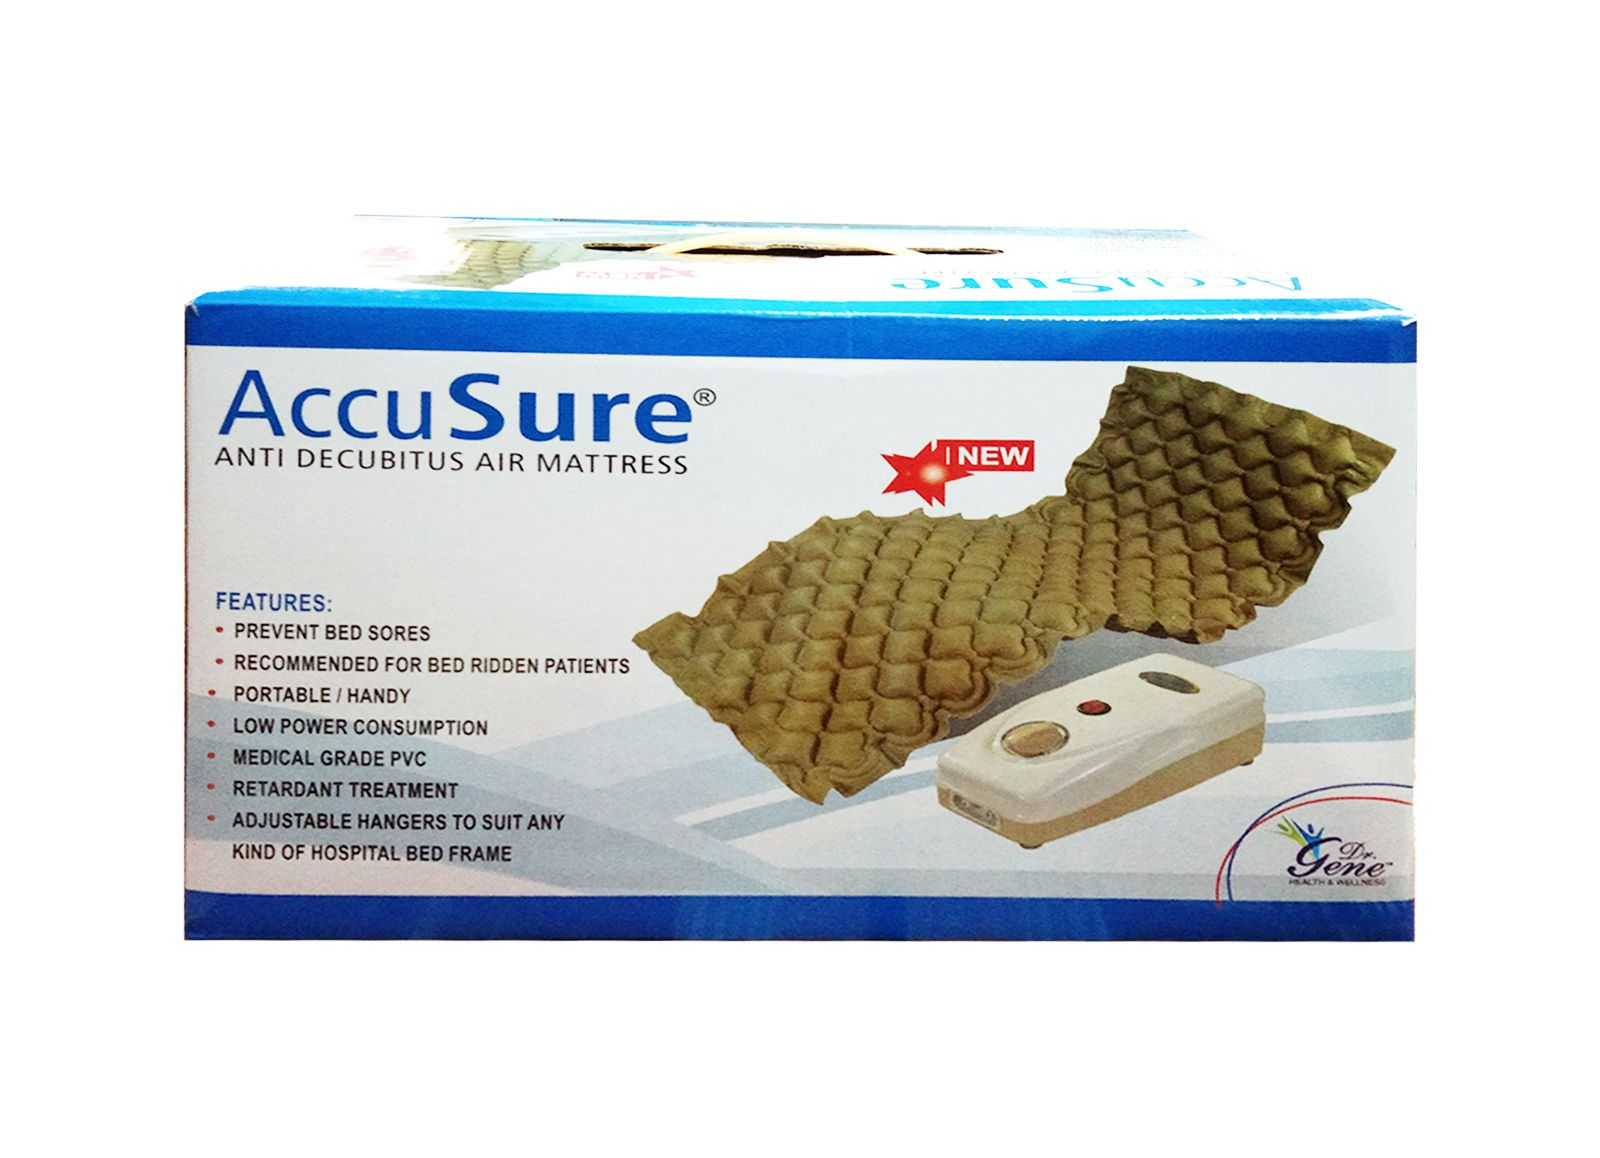 accusure air mattress with pump for preventing bed sores 8 89 cm